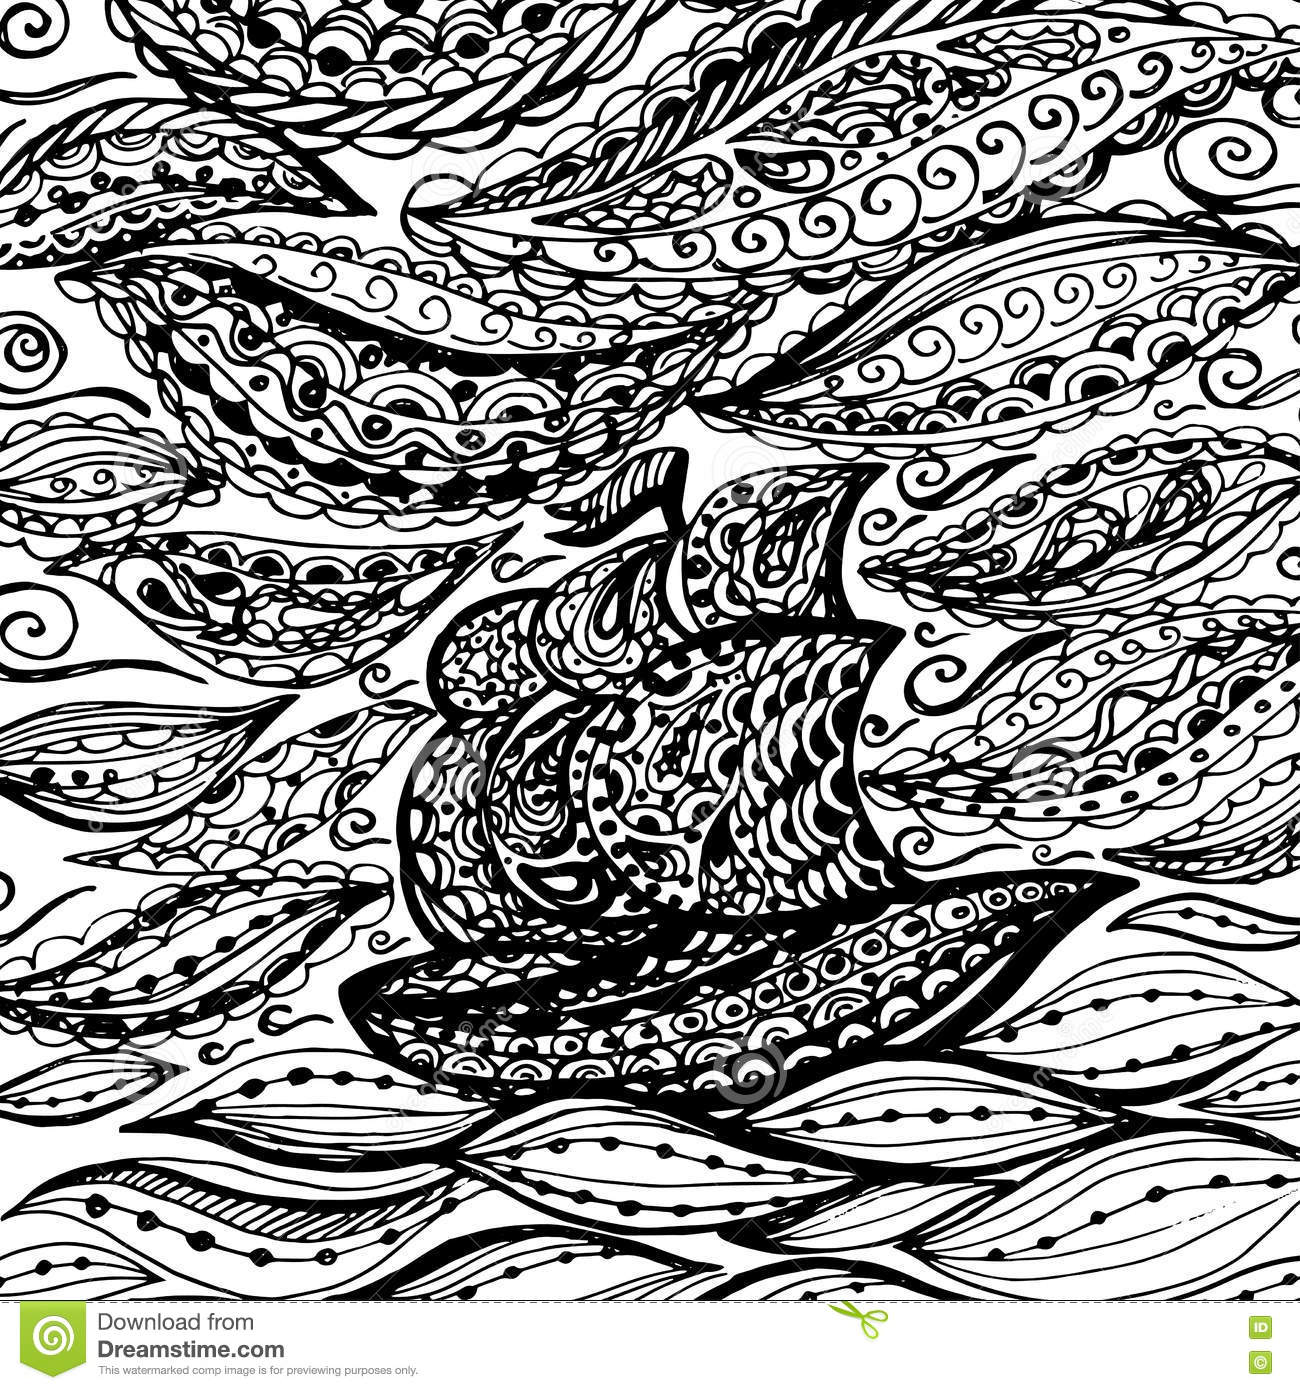 ocean storm coloring pages - photo#24